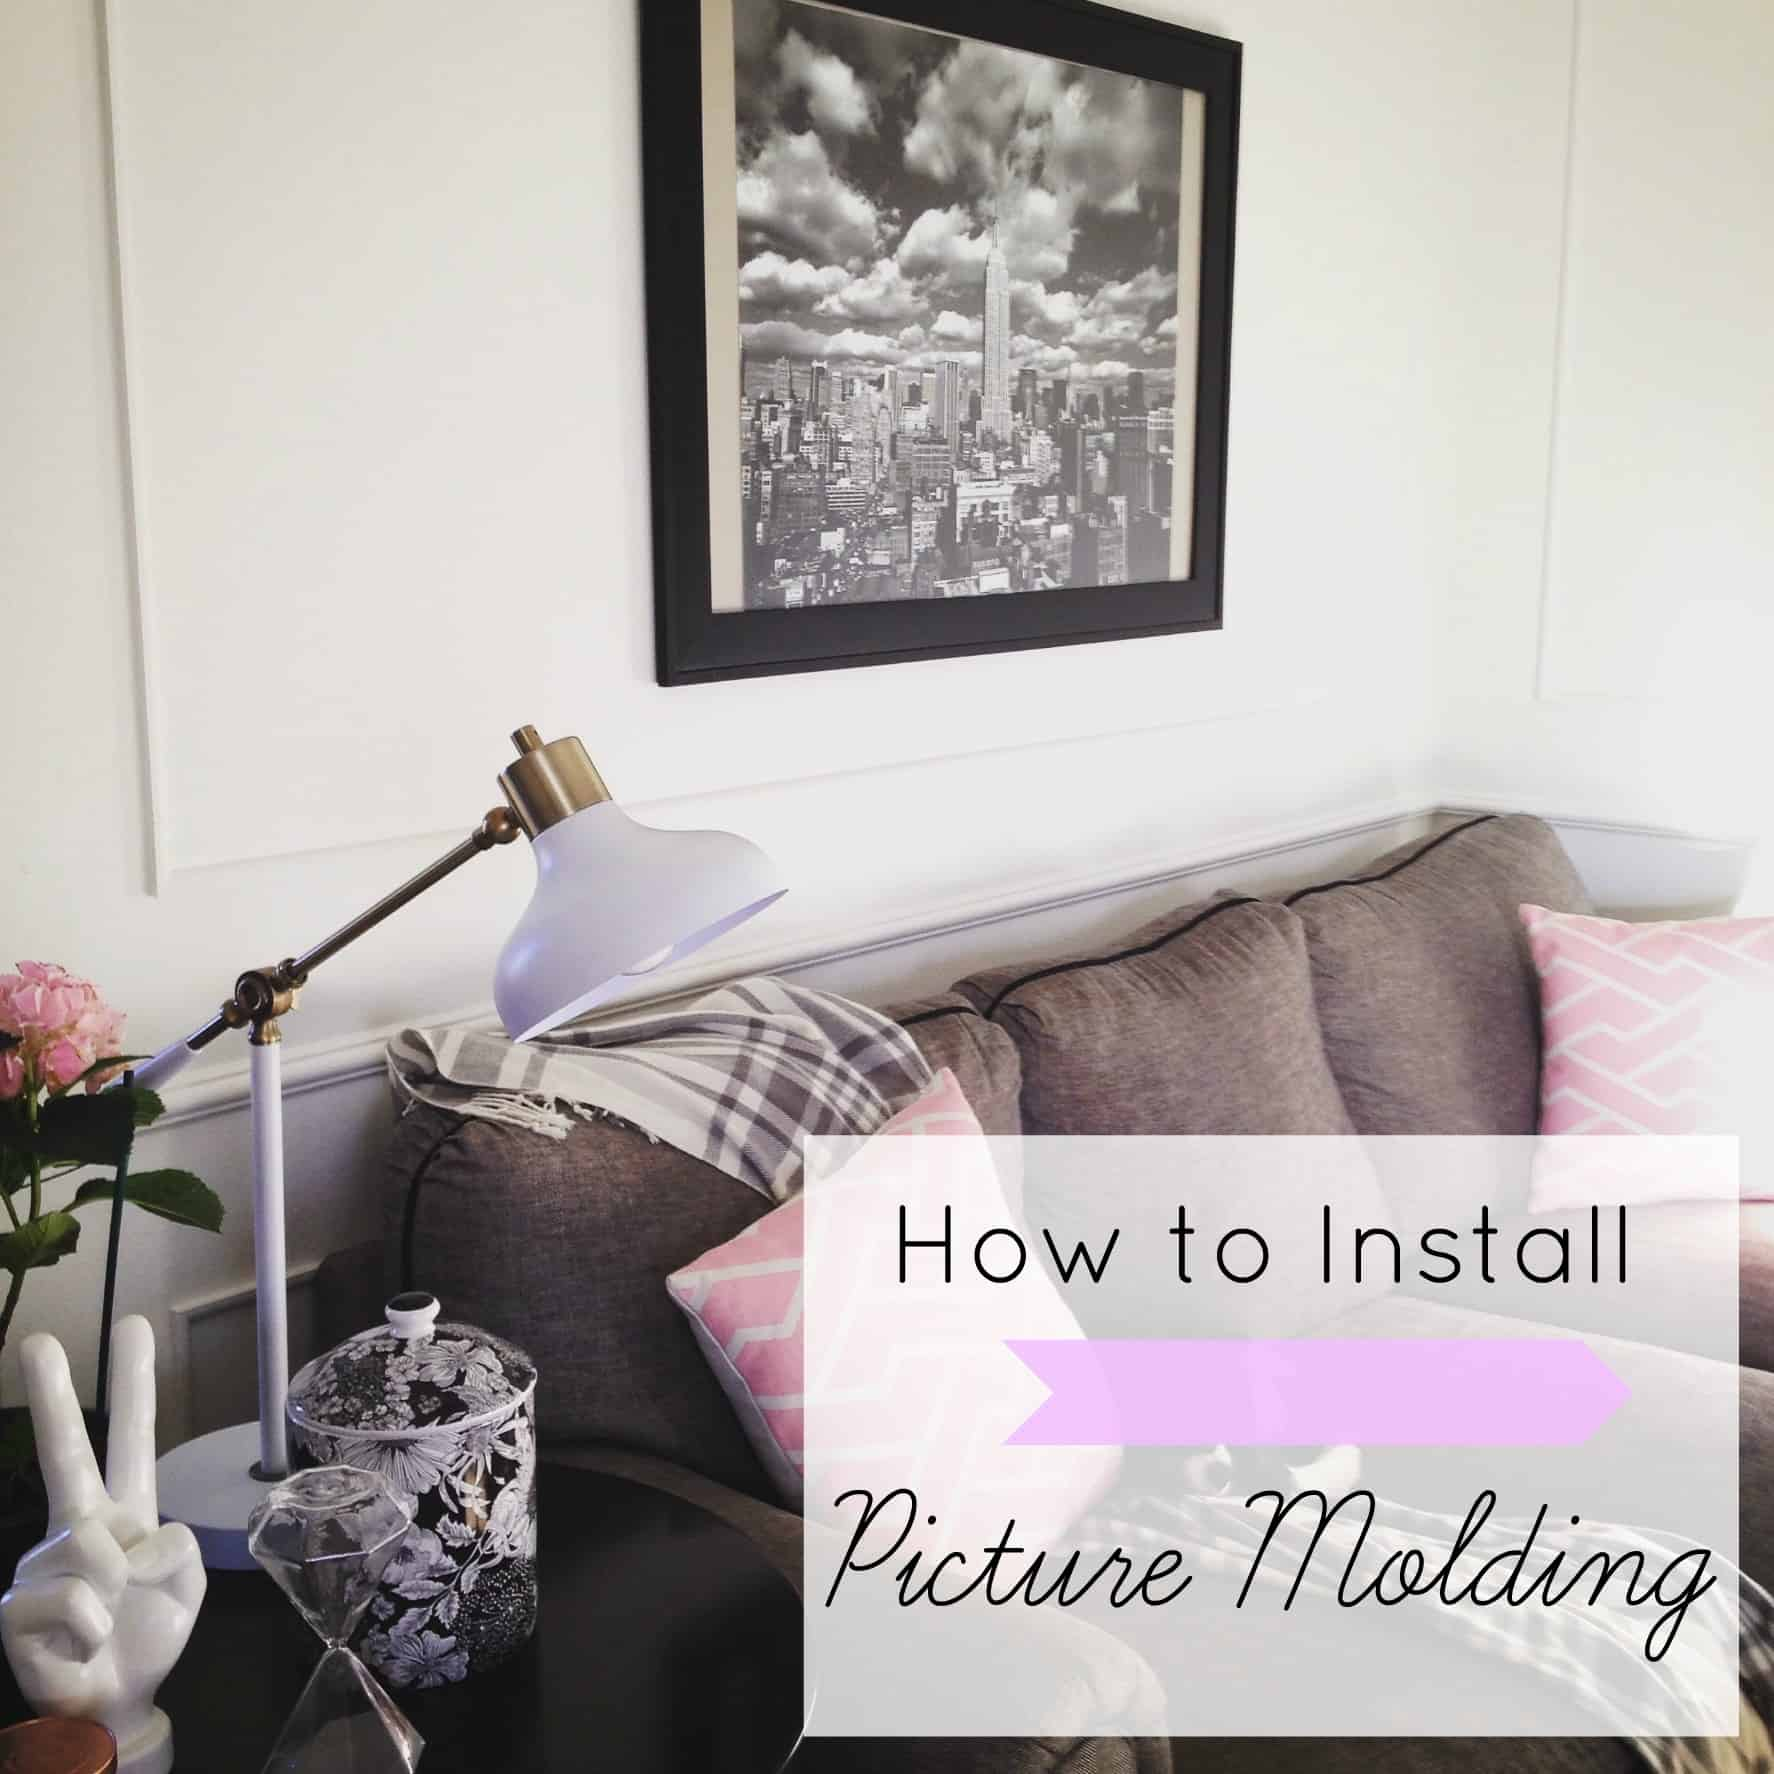 How to Install Picture Molding- Part 2